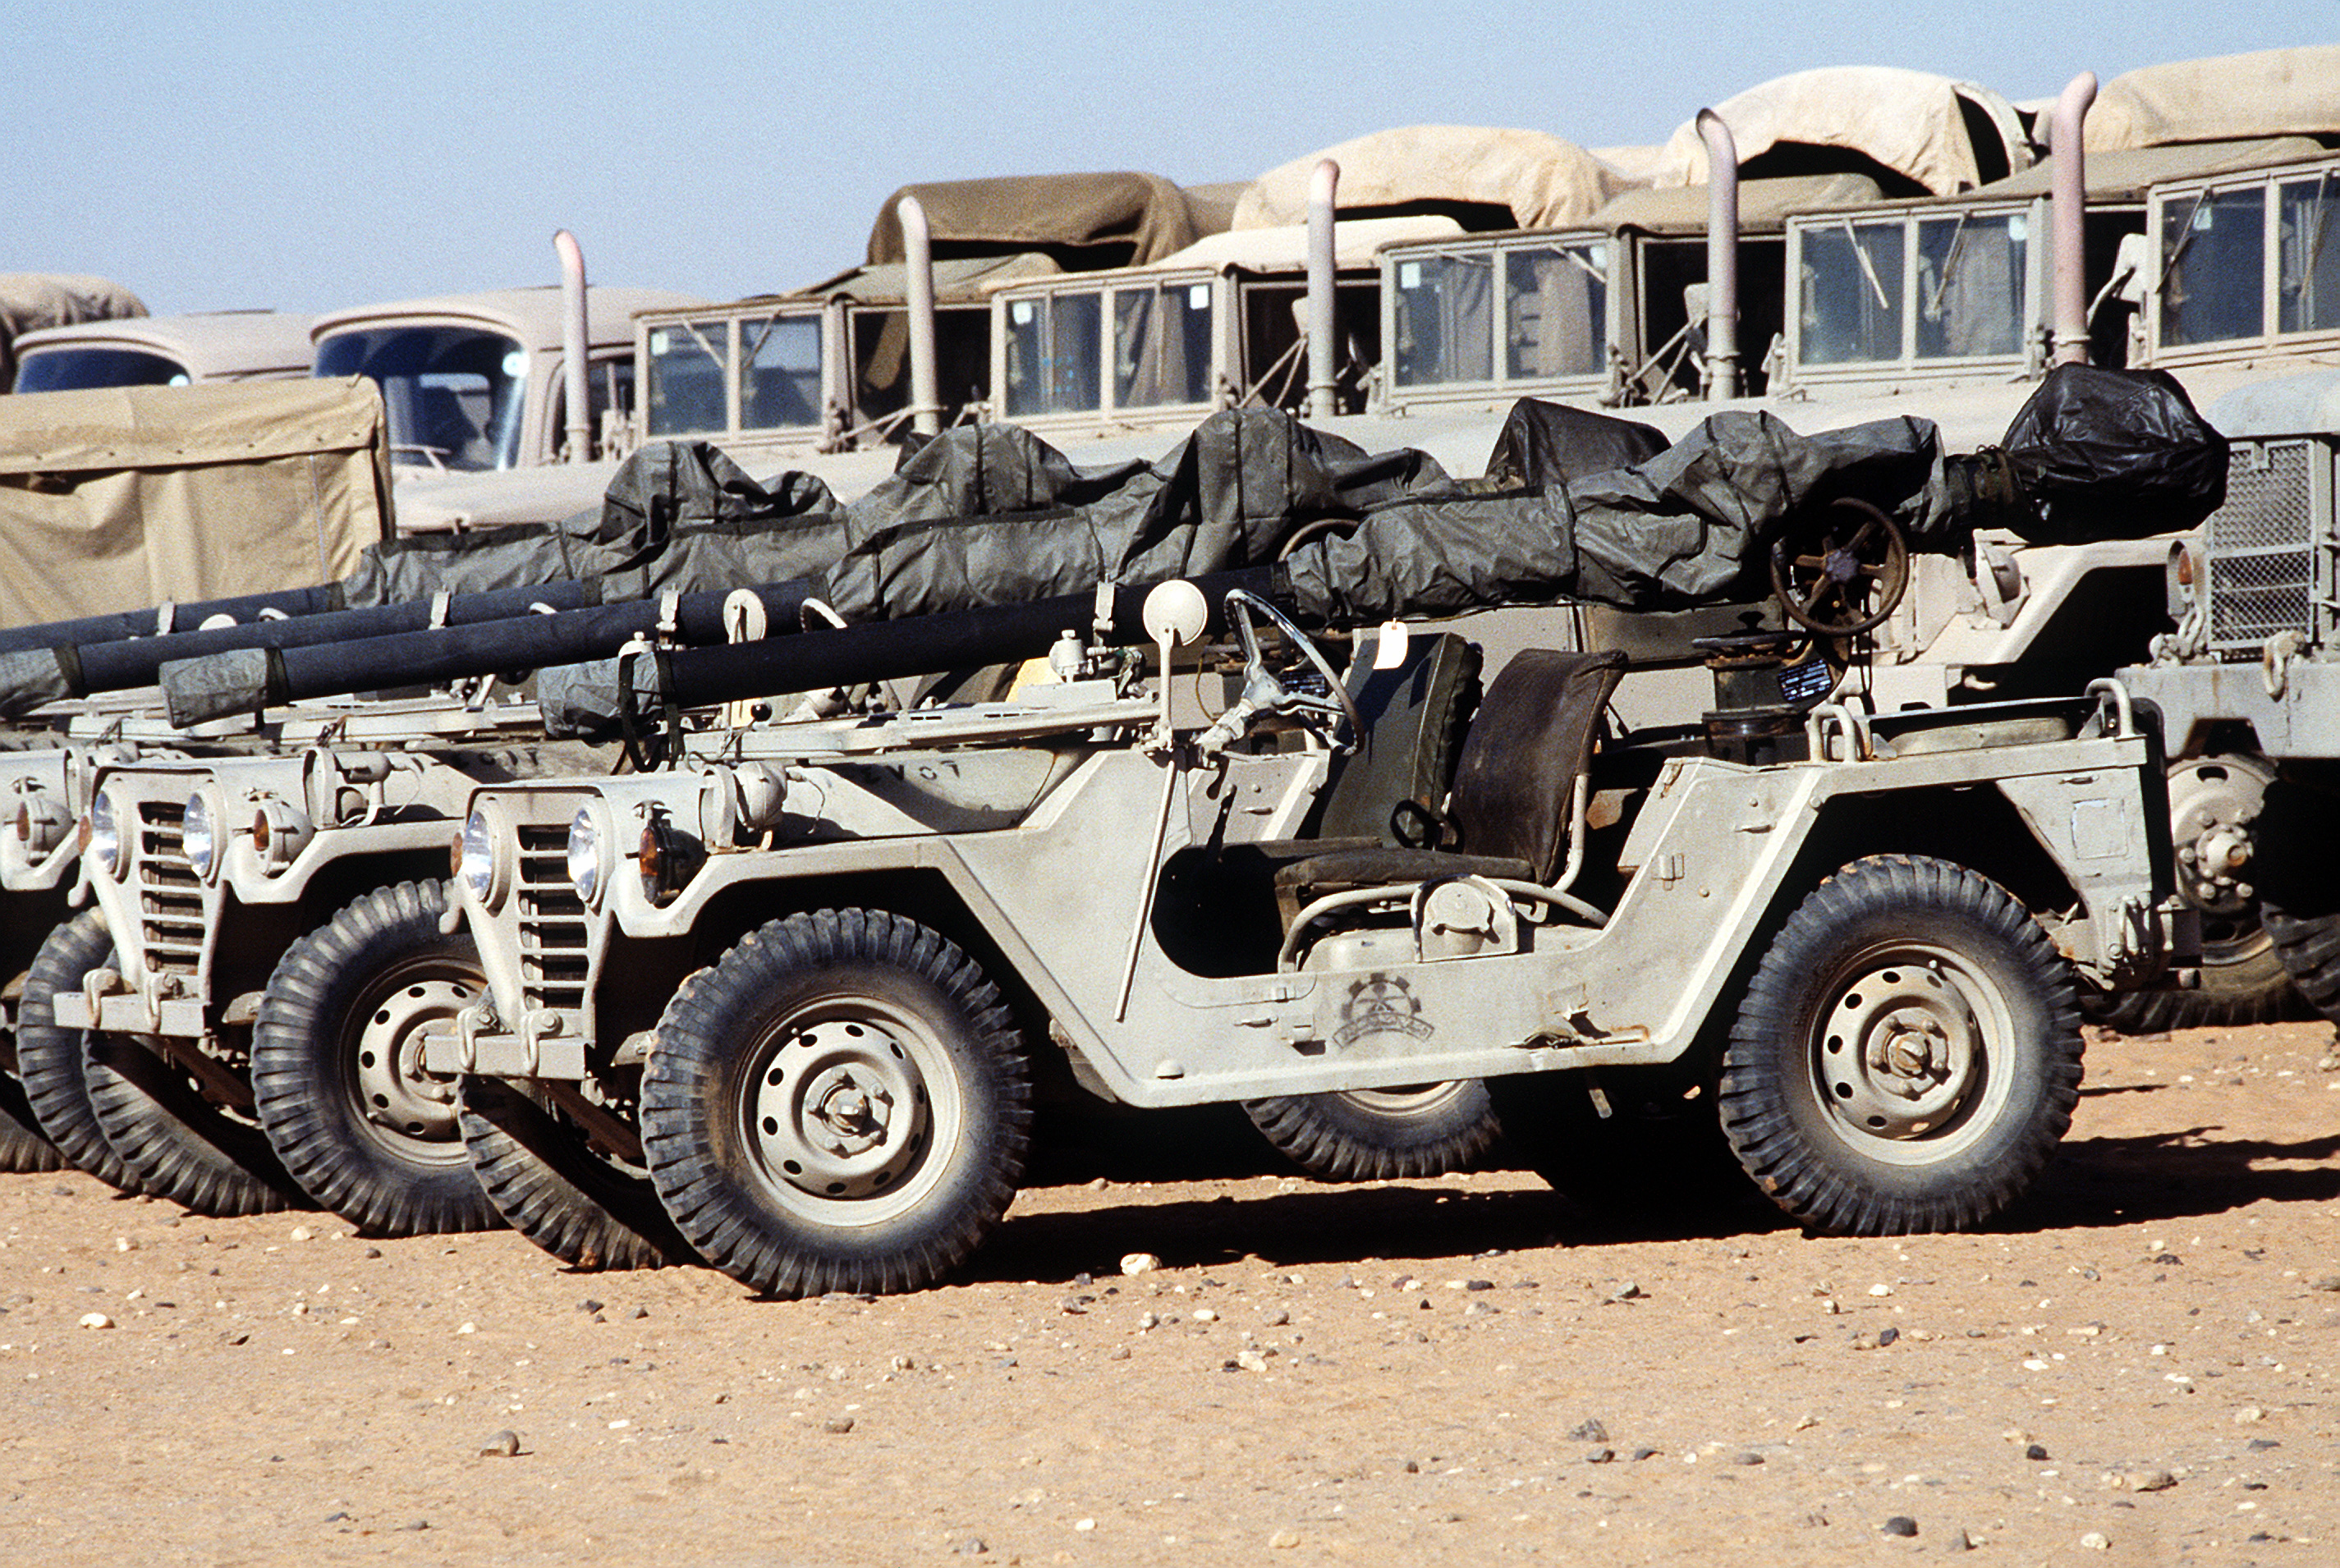 M38 Jeep For Sale >> M151 MUTT - Military Wiki